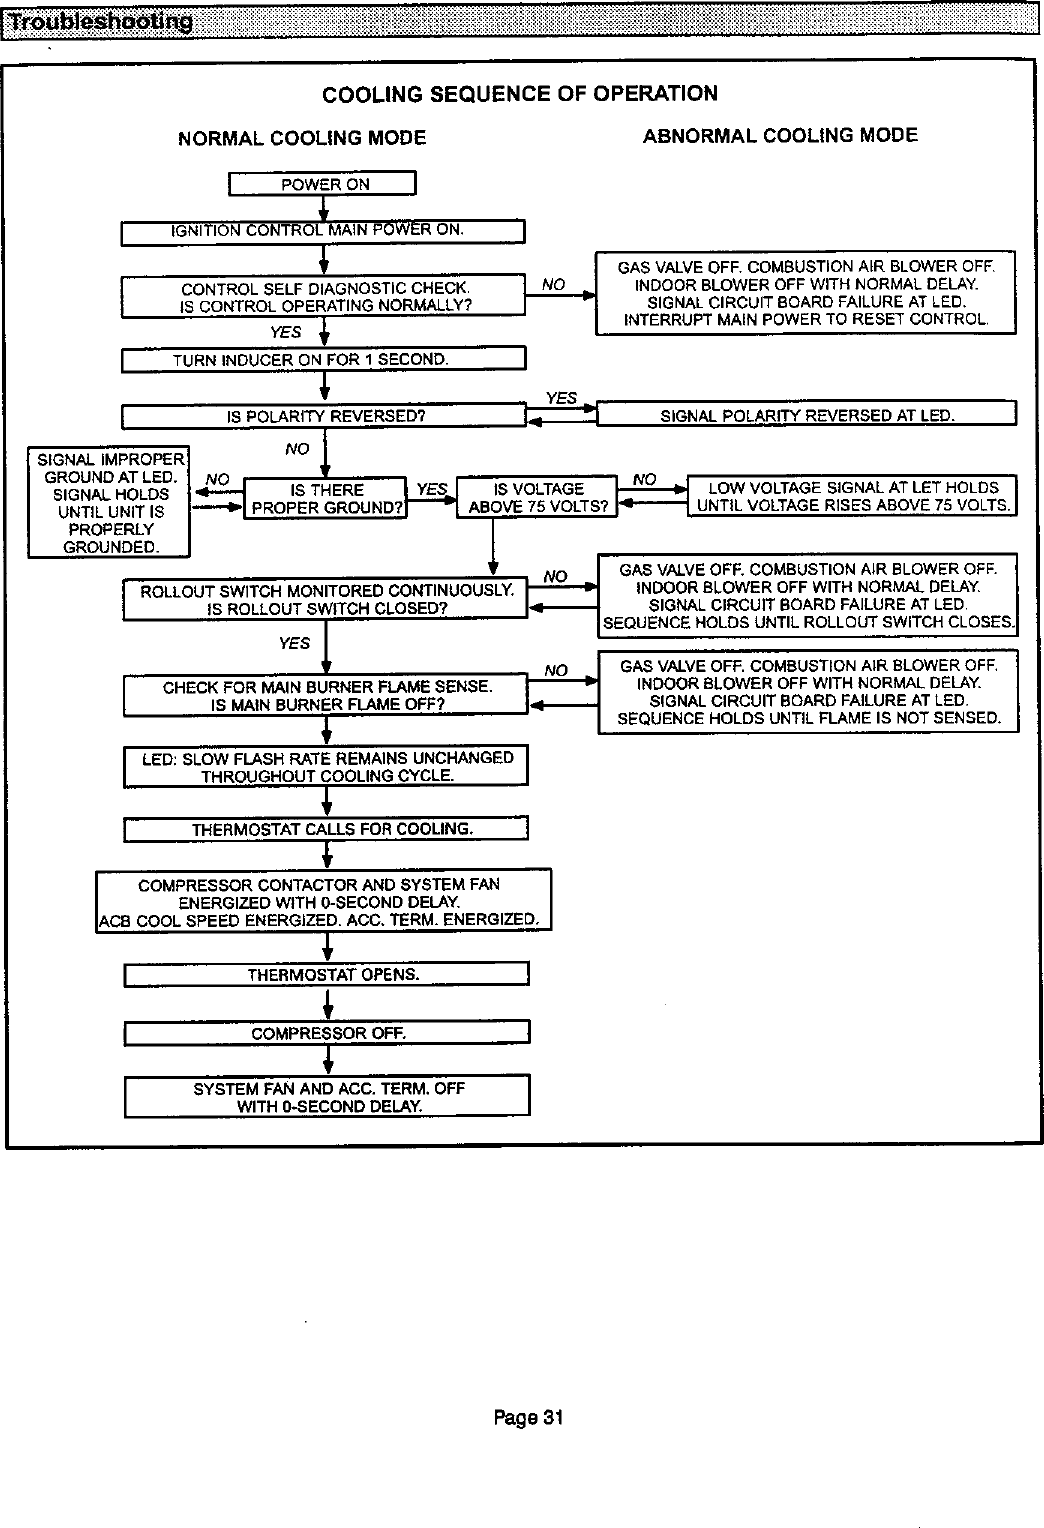 Lennox Furnace Control Board Wiring Diagram Together With Gas Furnace